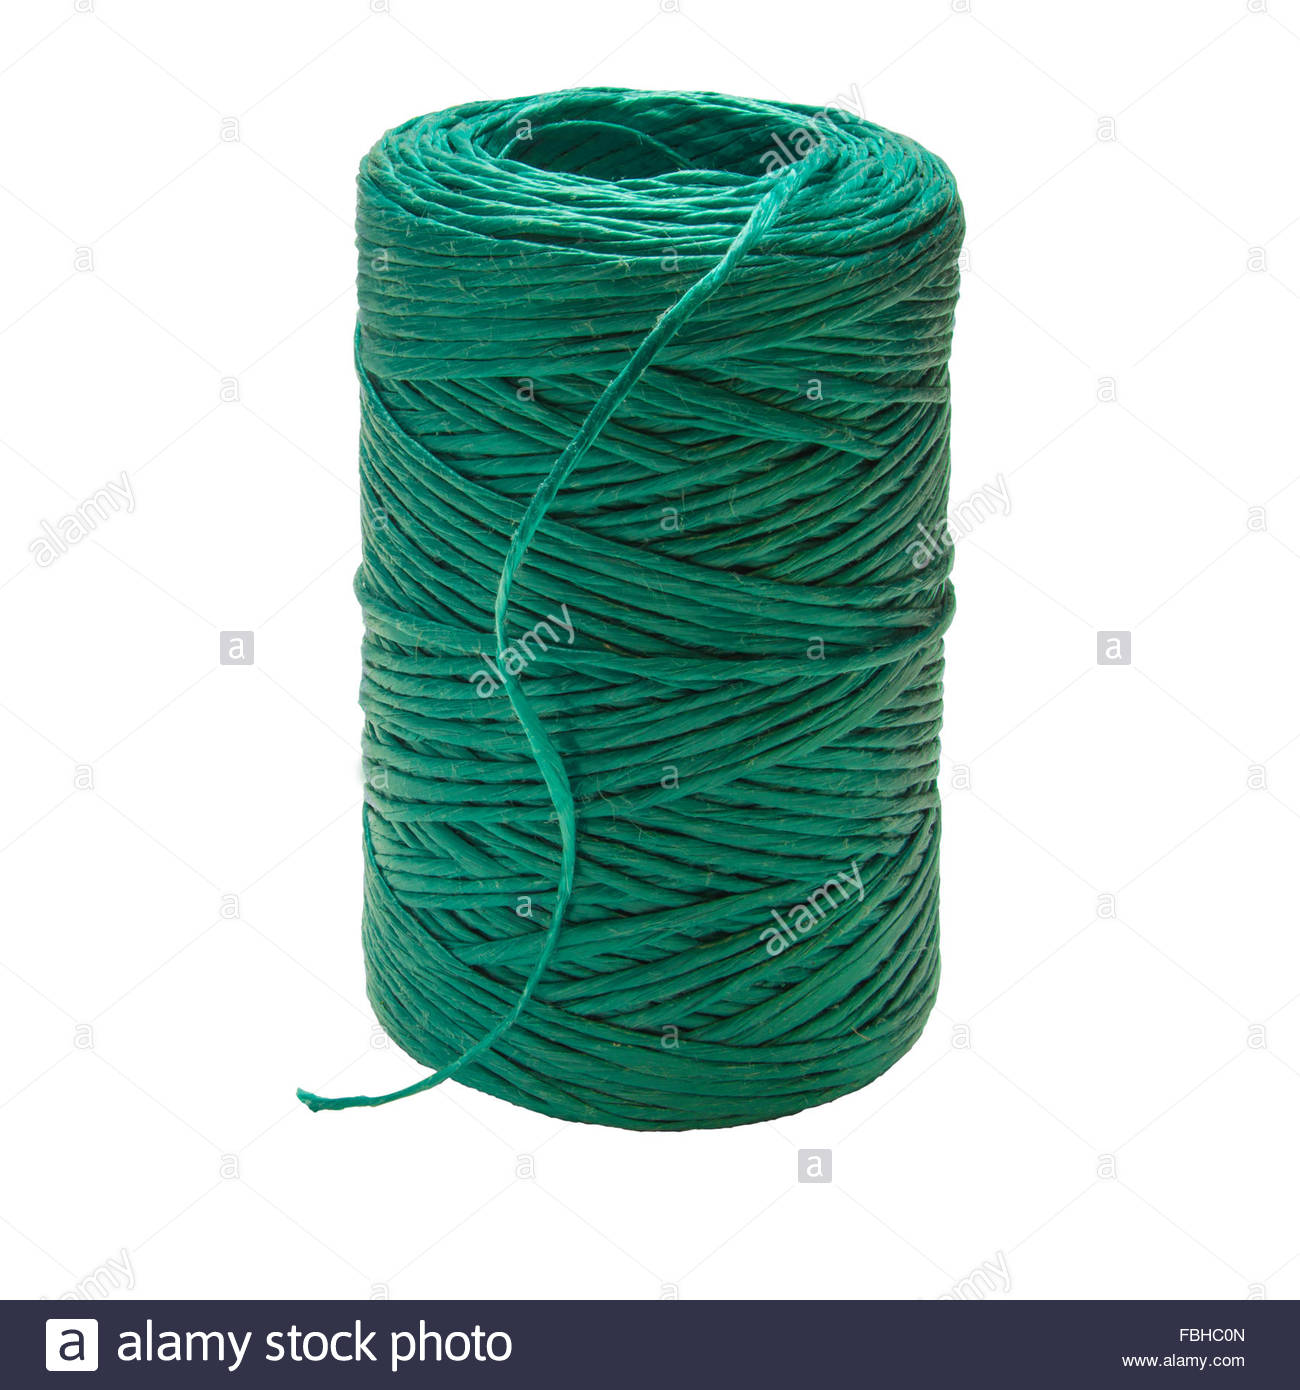 Green Polypropylene Garden String Twine isolated on white Stock